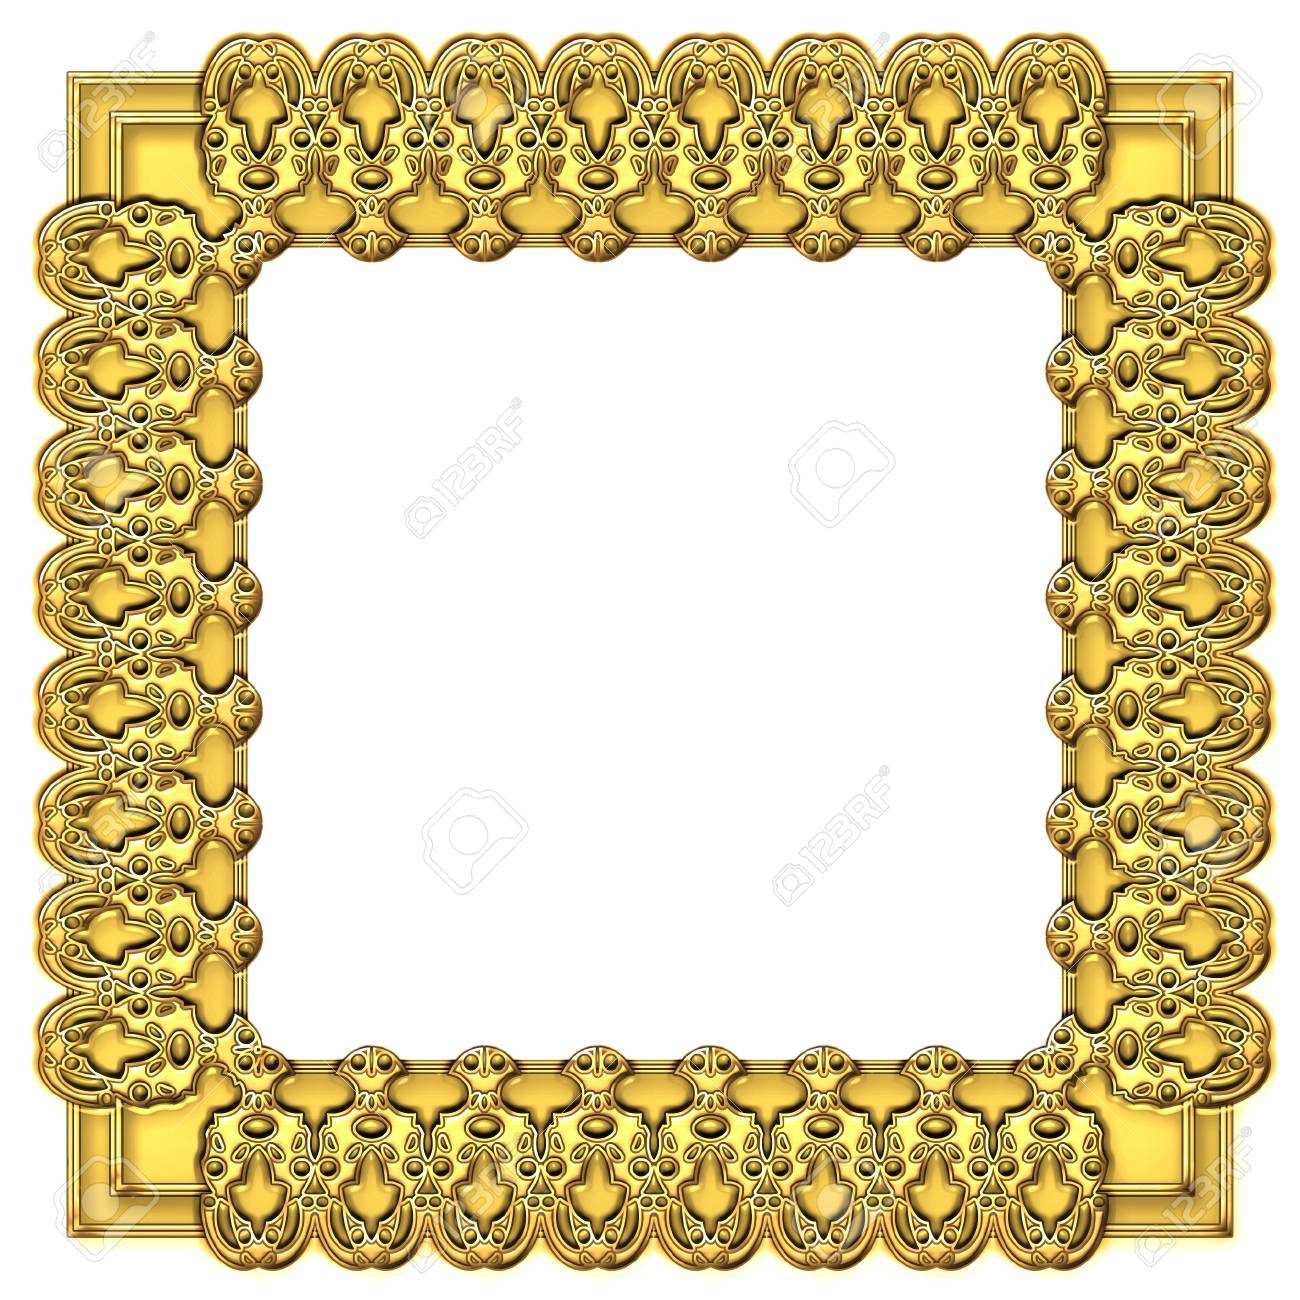 Square Gold Frame Stock Photo, Picture And Royalty Free Image. Image ...